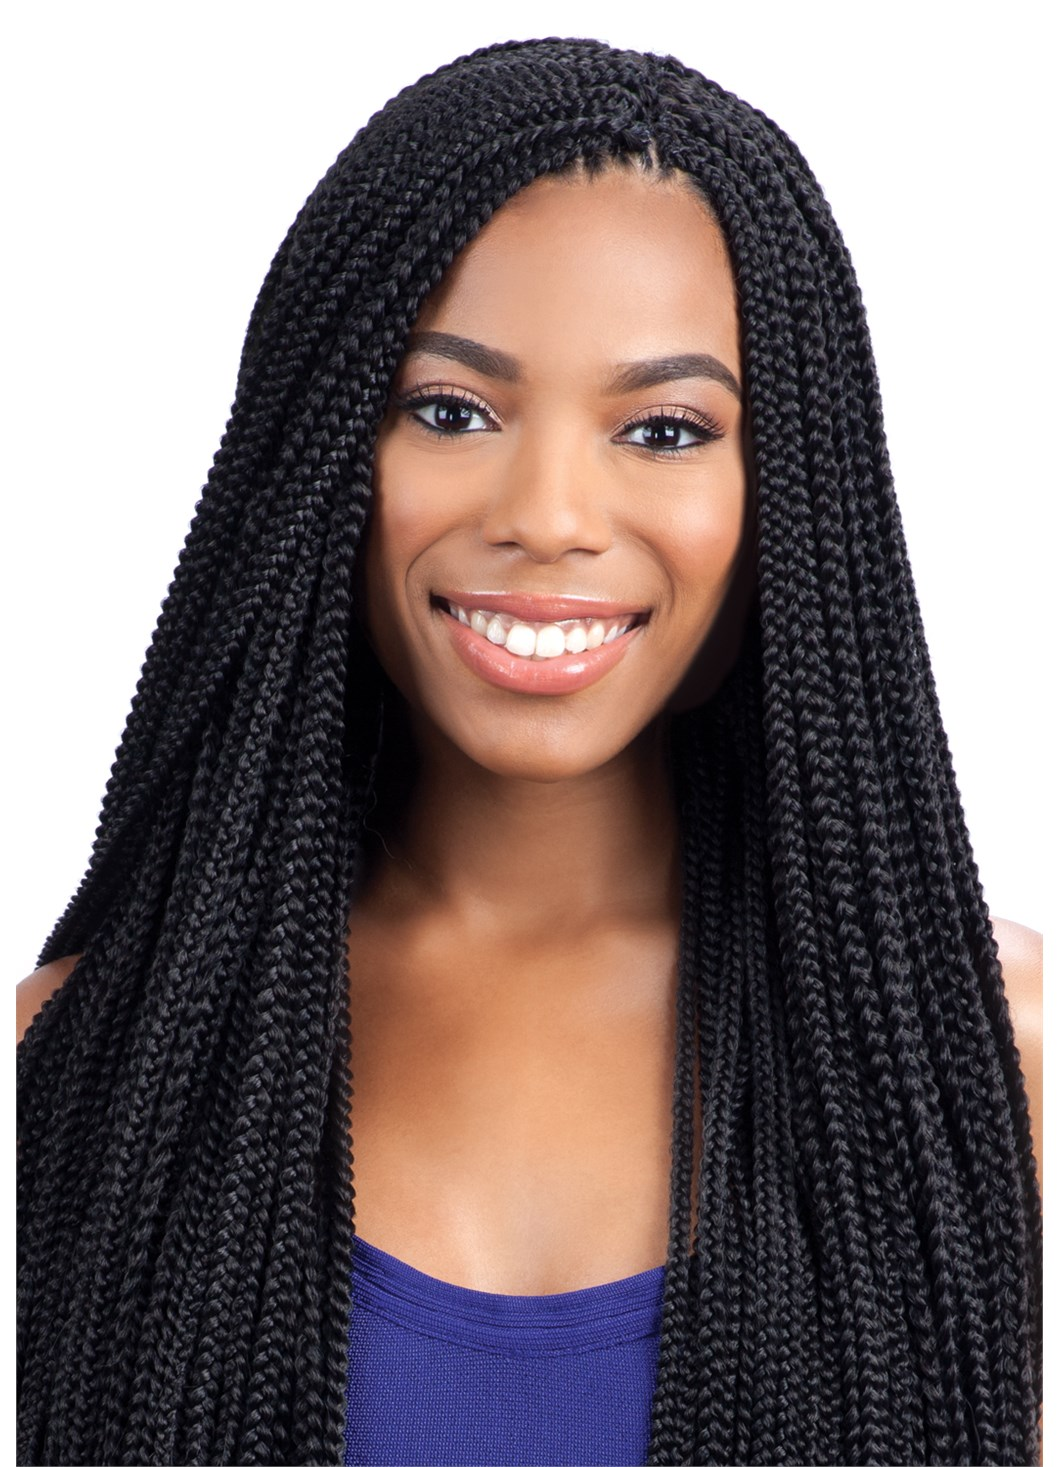 How To Do Crochet Box Braids Small : SMALL BOX BRAIDS - FREETRESS SYNTHETIC CROCHET BRAID HAIR PRE-LOOPED ...